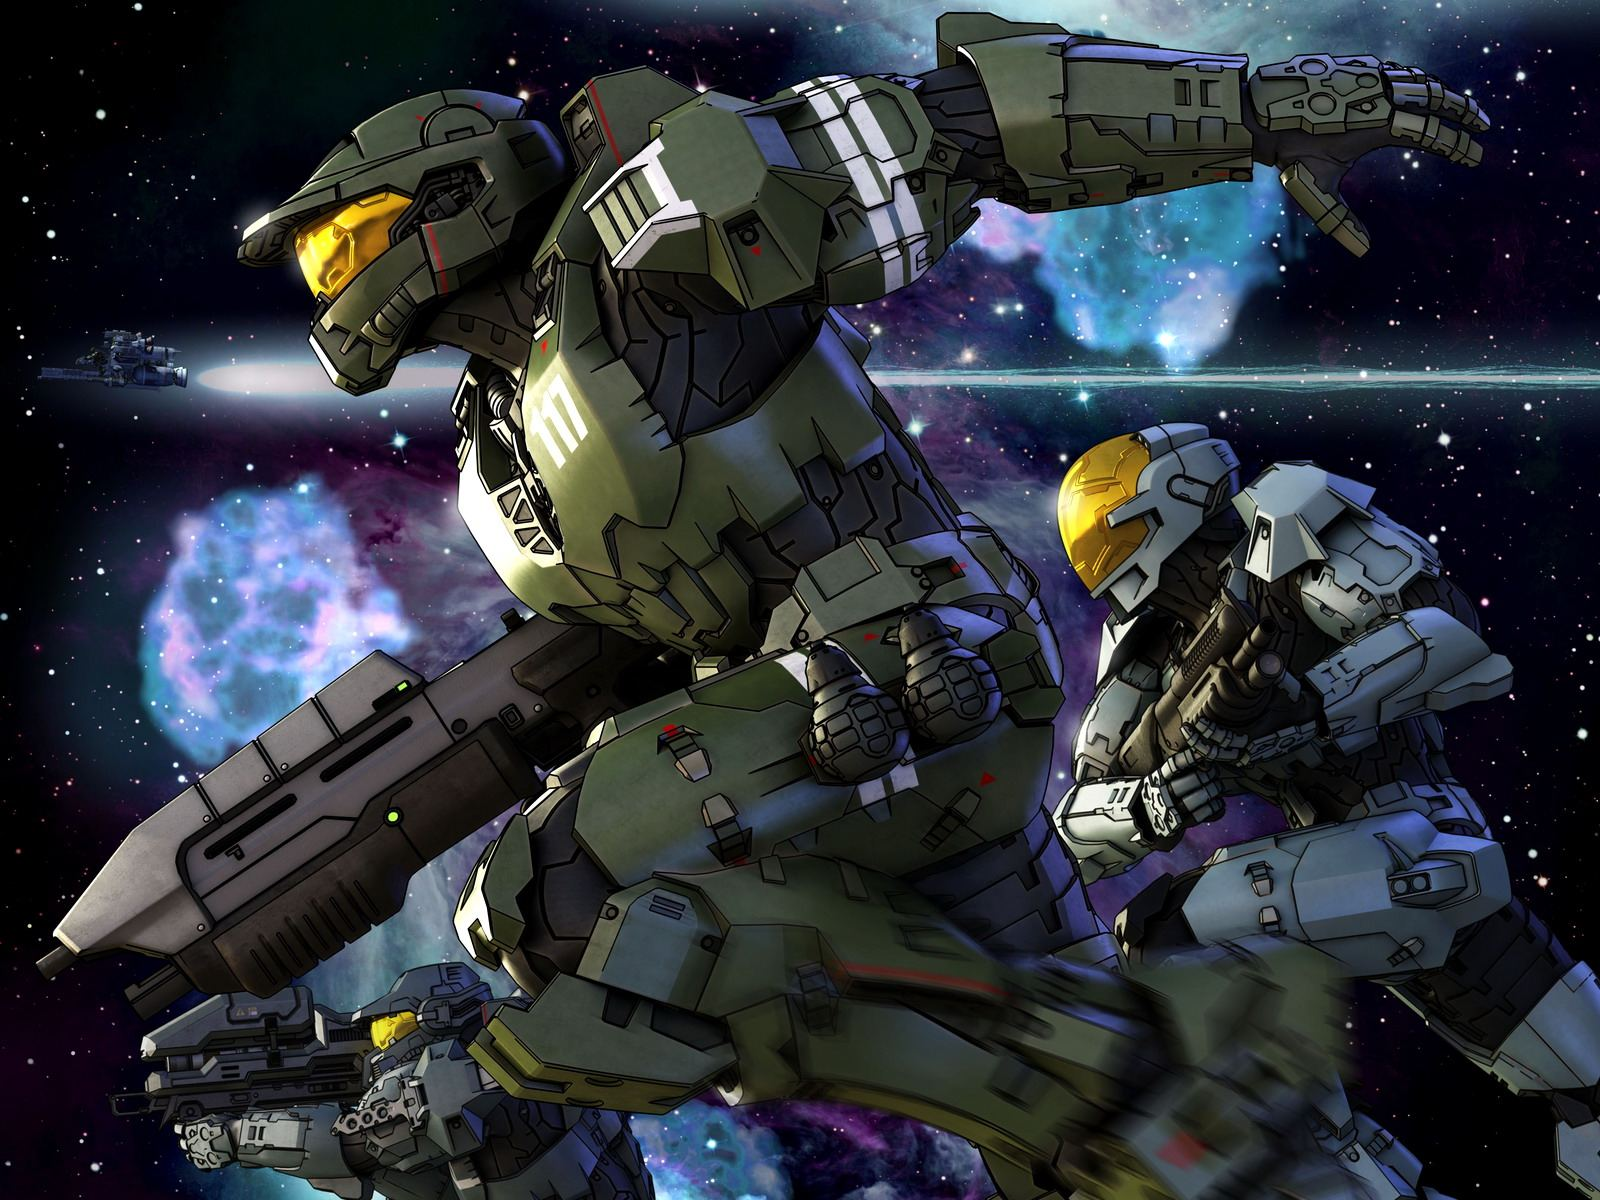 Halo Legends Wallpapers Anime Hq Halo Legends Pictures 4k